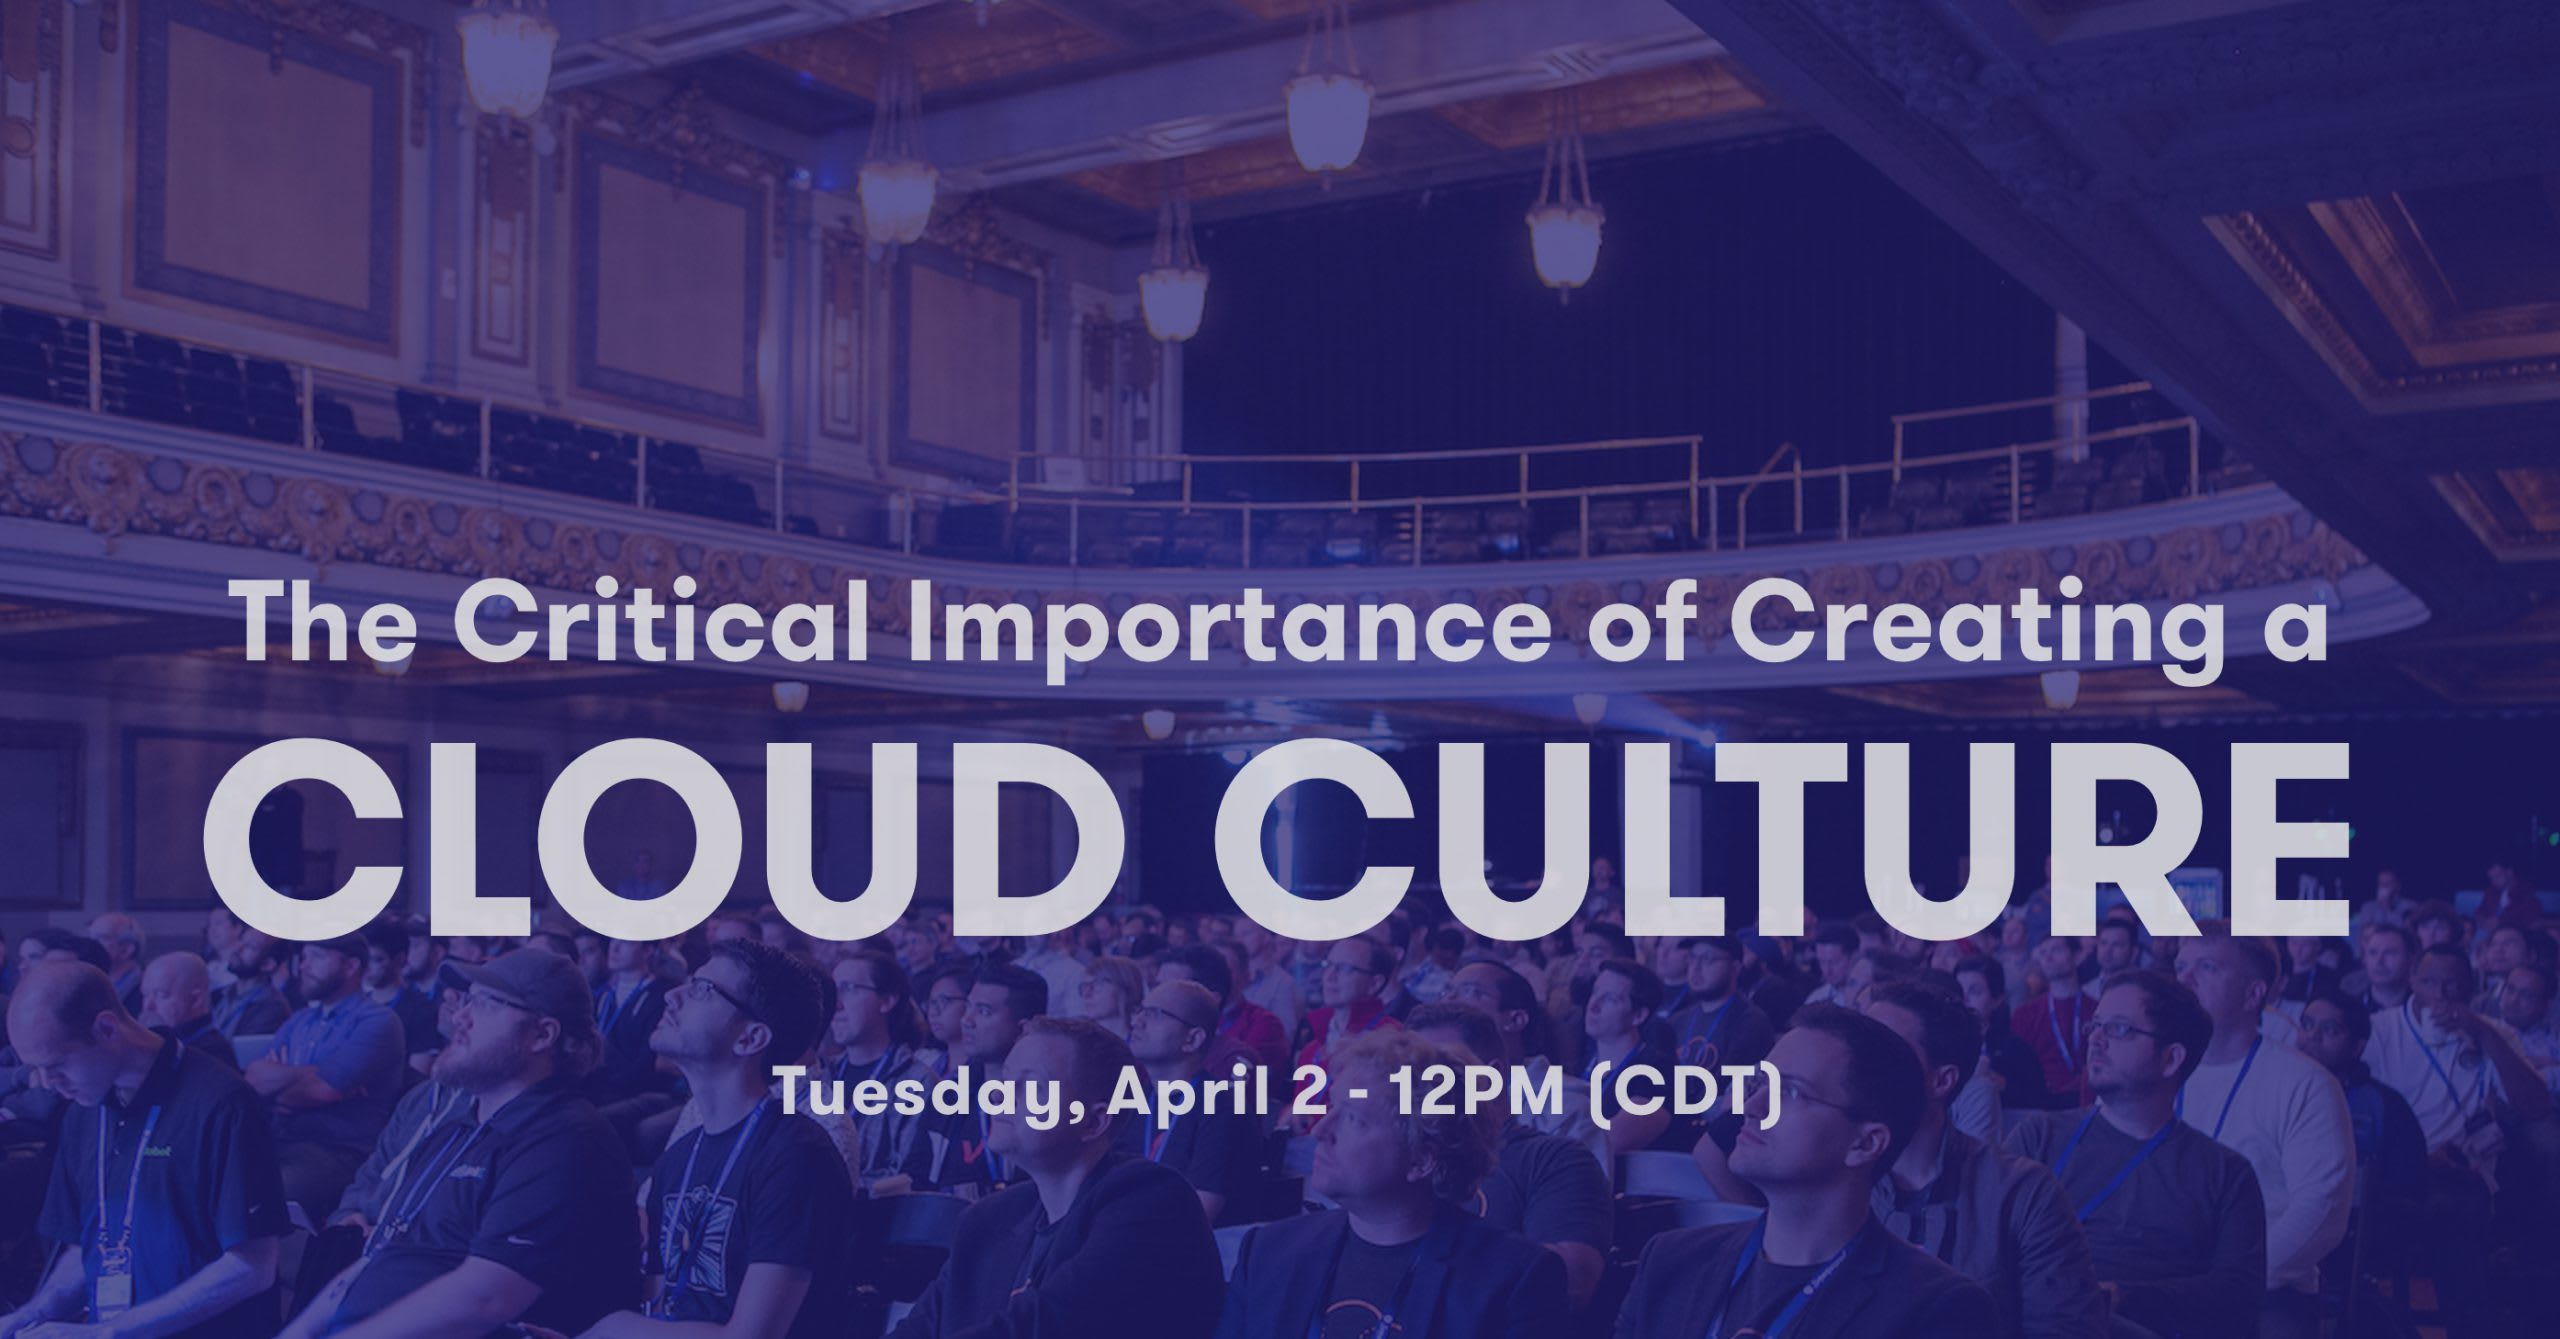 The critical importance of creating a cloud culture